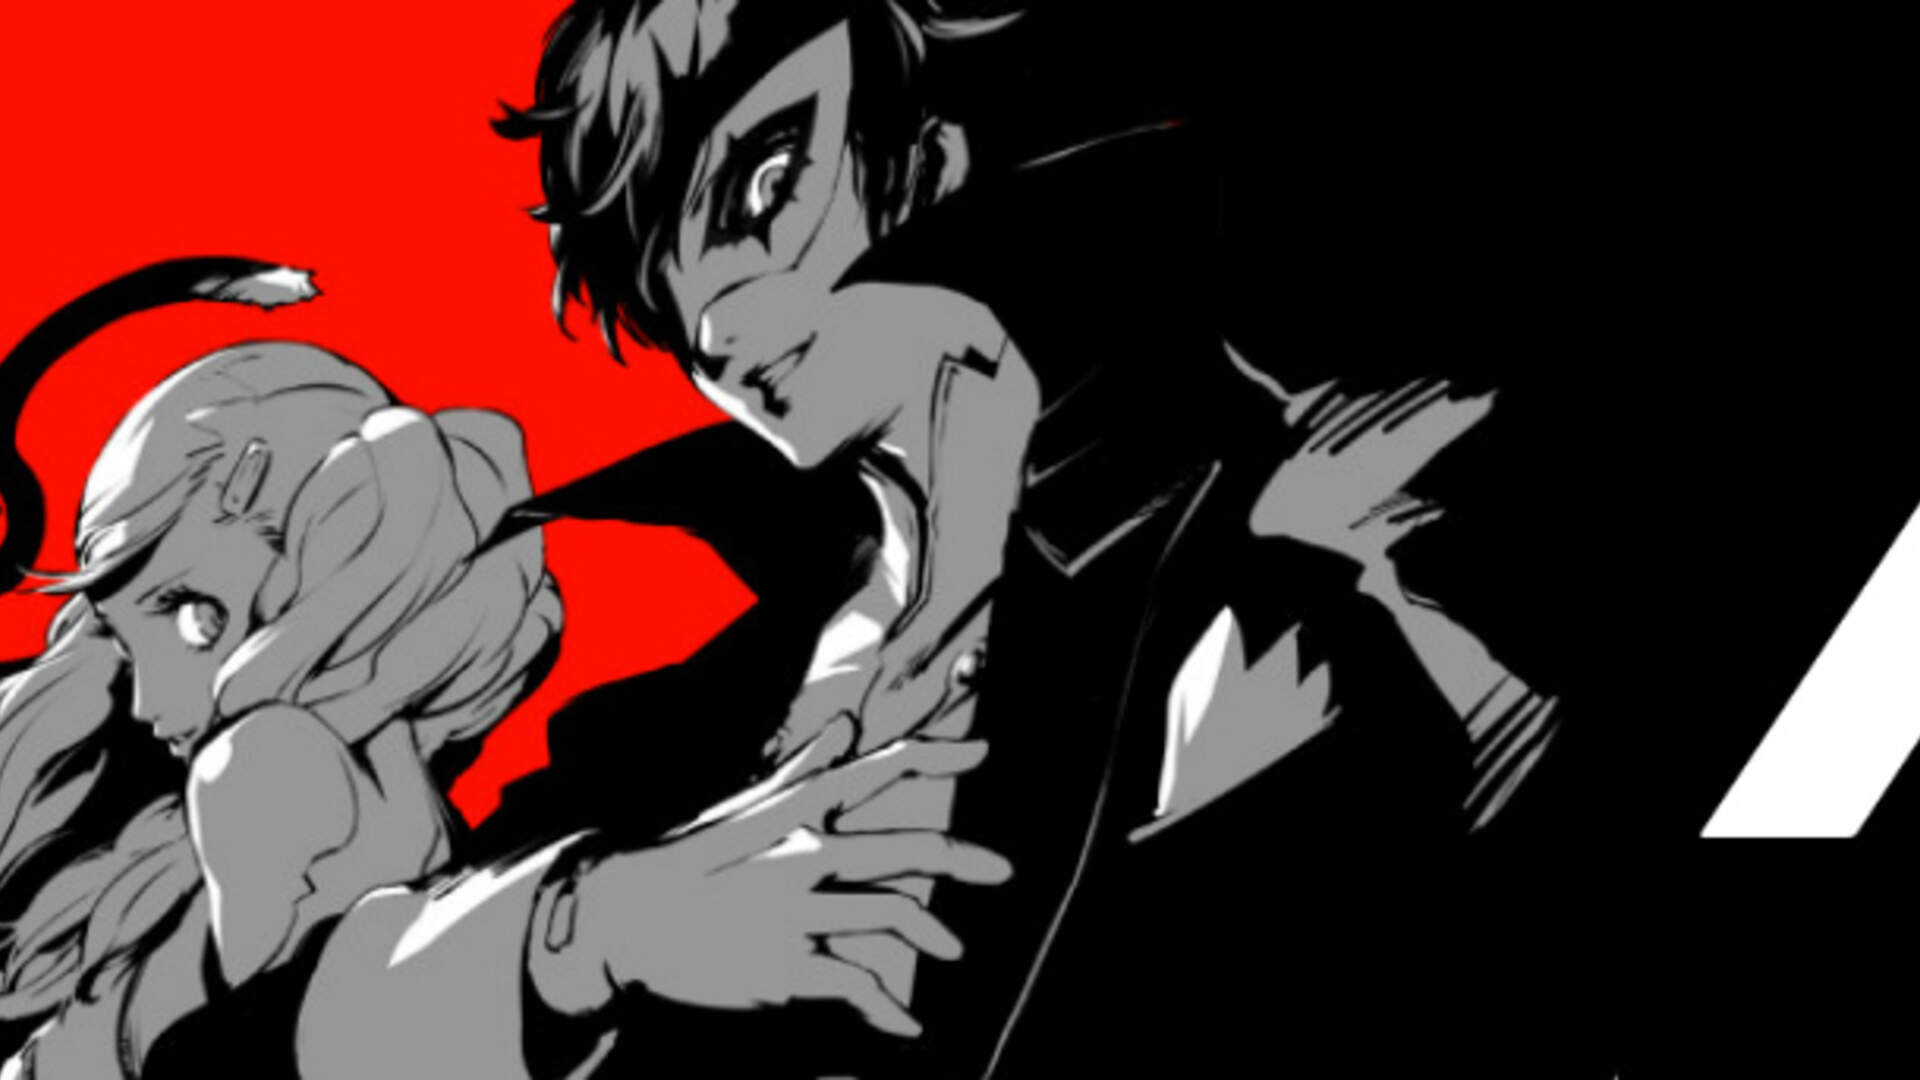 Atlus Releases New Persona 5 Ultimate Edition, but It's Pretty Expensive